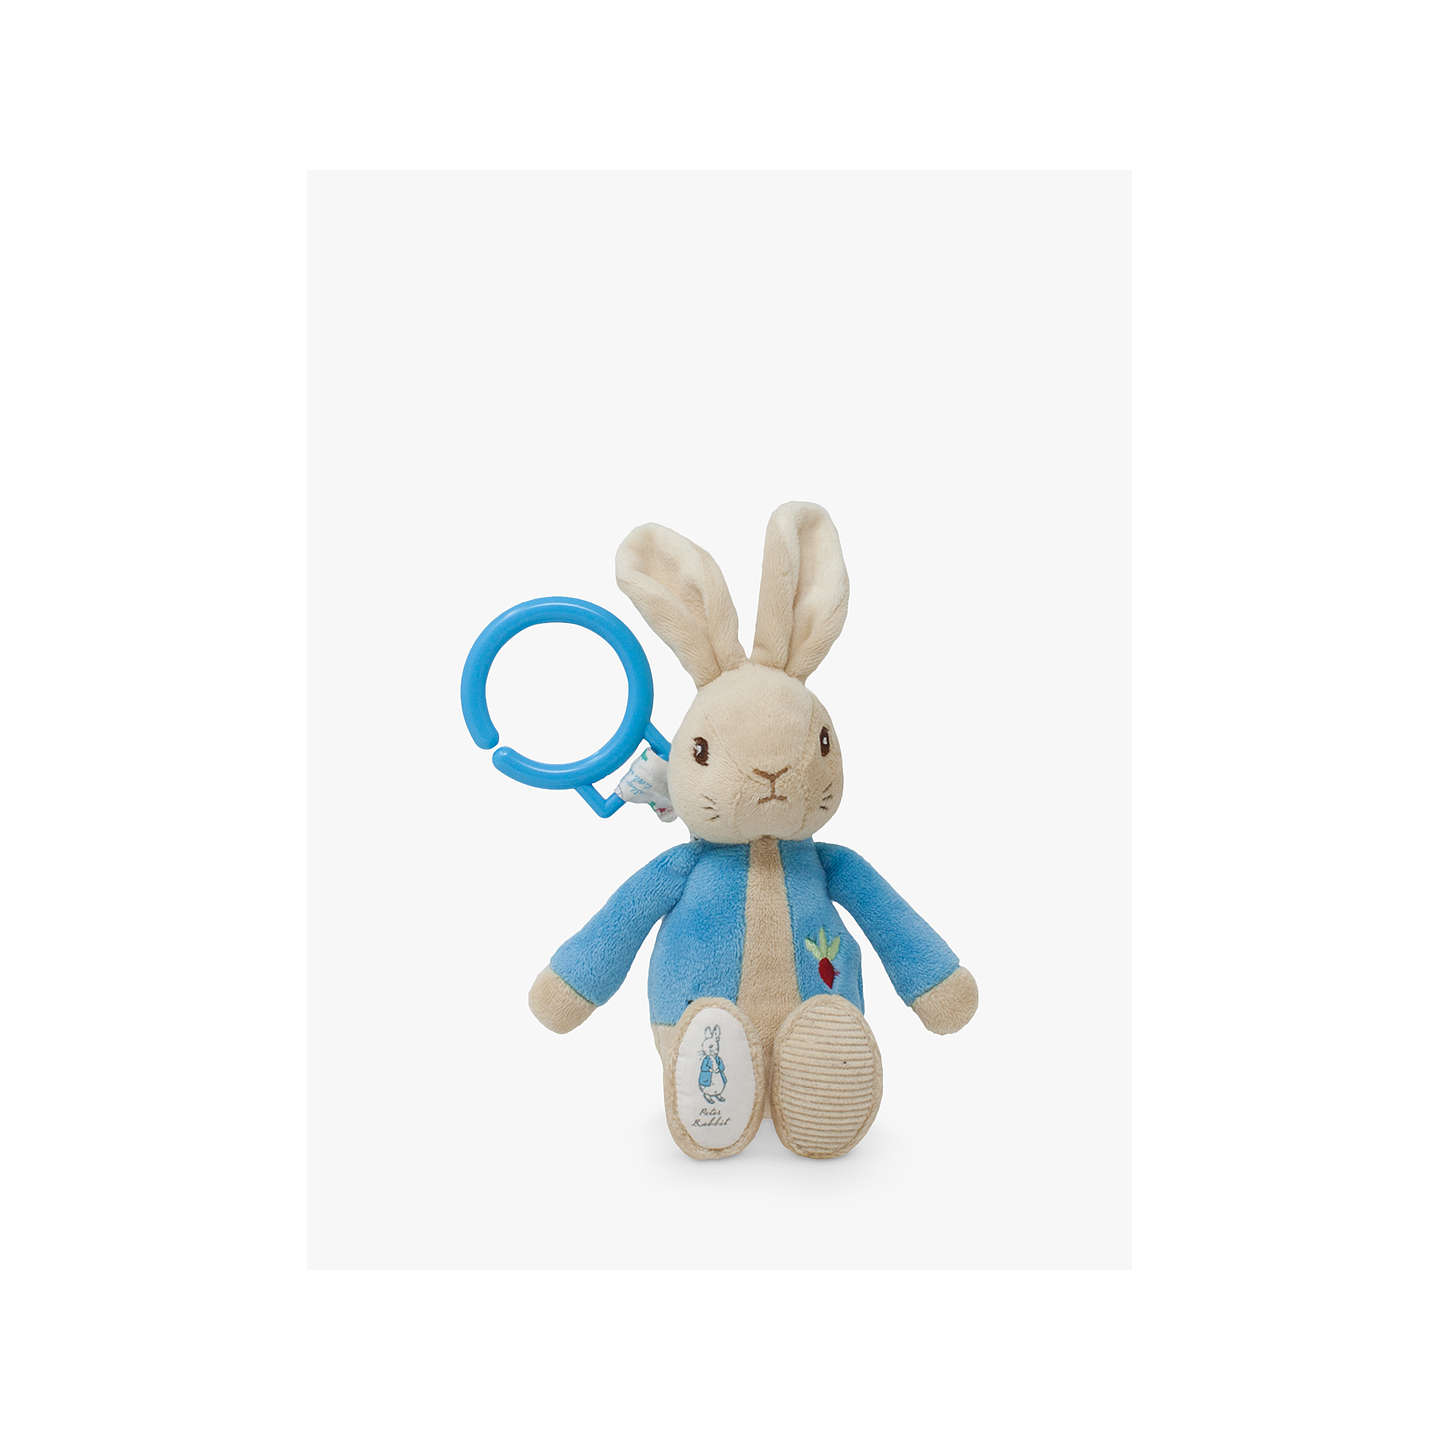 BuyBeatrix Potter Peter Rabbit Jiggle Toy Online at johnlewis.com